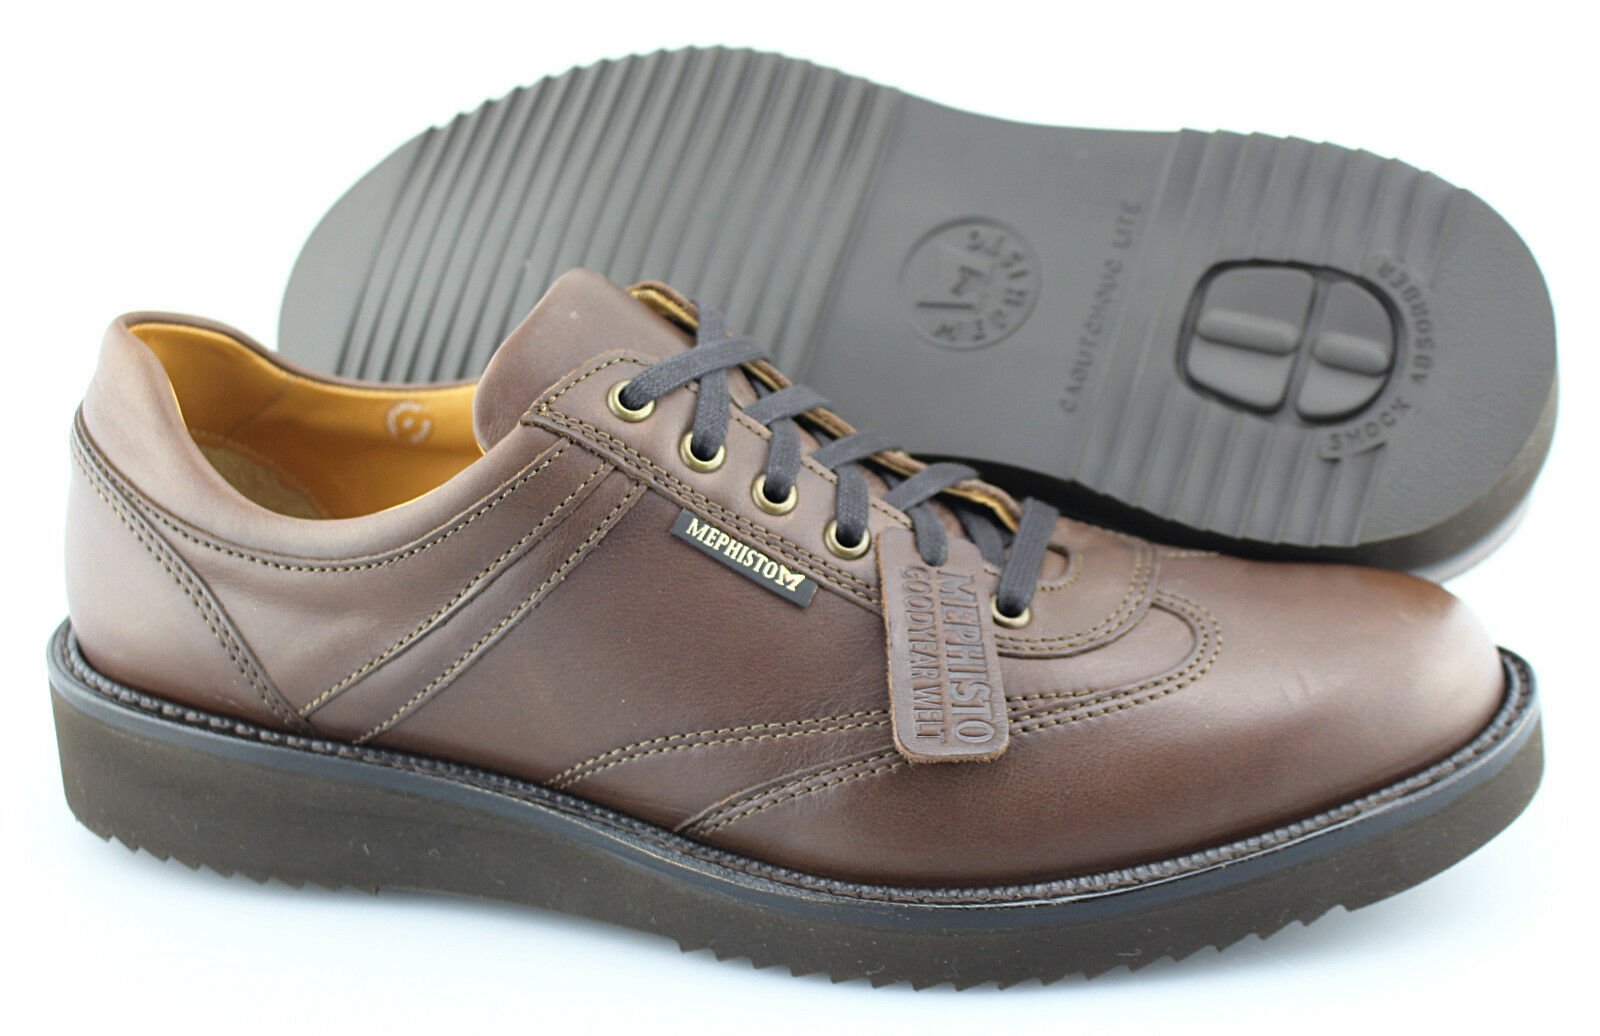 Men's MEPHISTO 'Adriano' Brown Leather Sneakers Size US 11